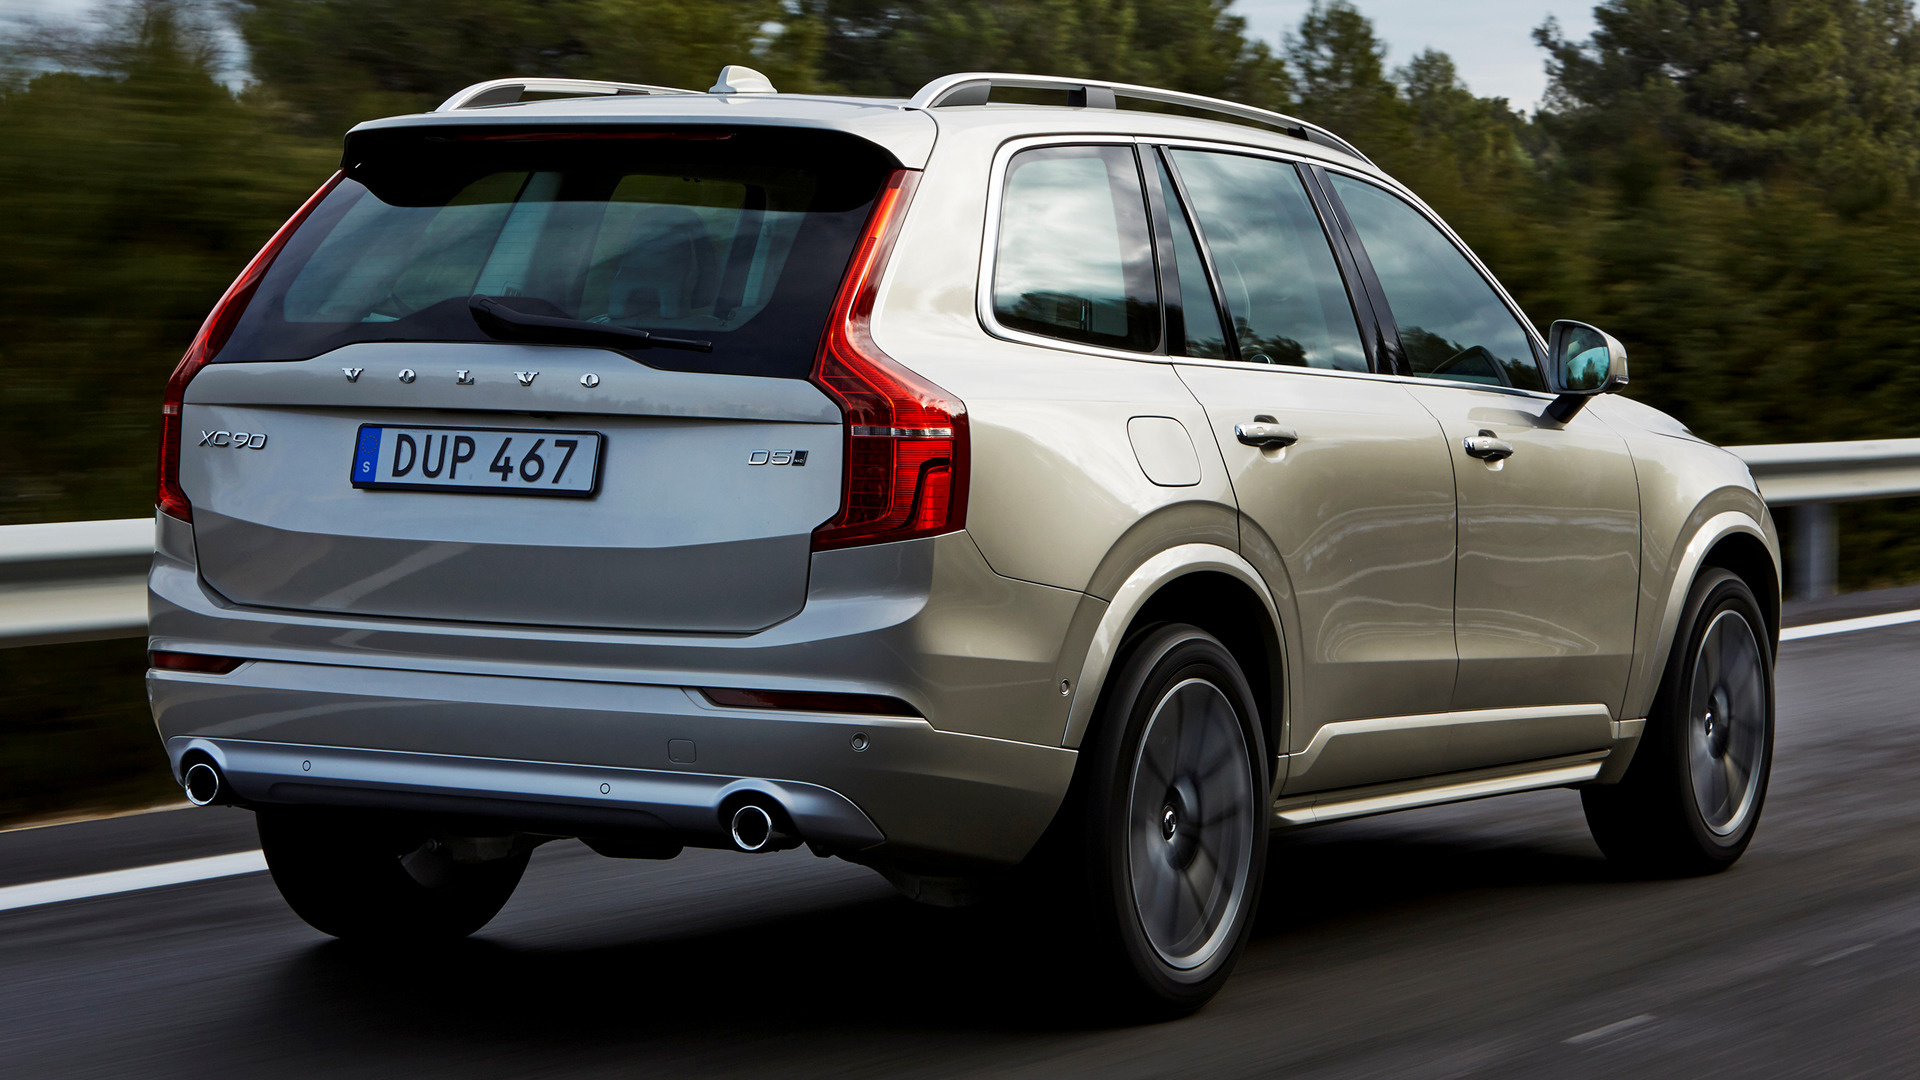 Volvo Xc90 Momentum >> 2015 Volvo XC90 Momentum - Wallpapers and HD Images   Car ...